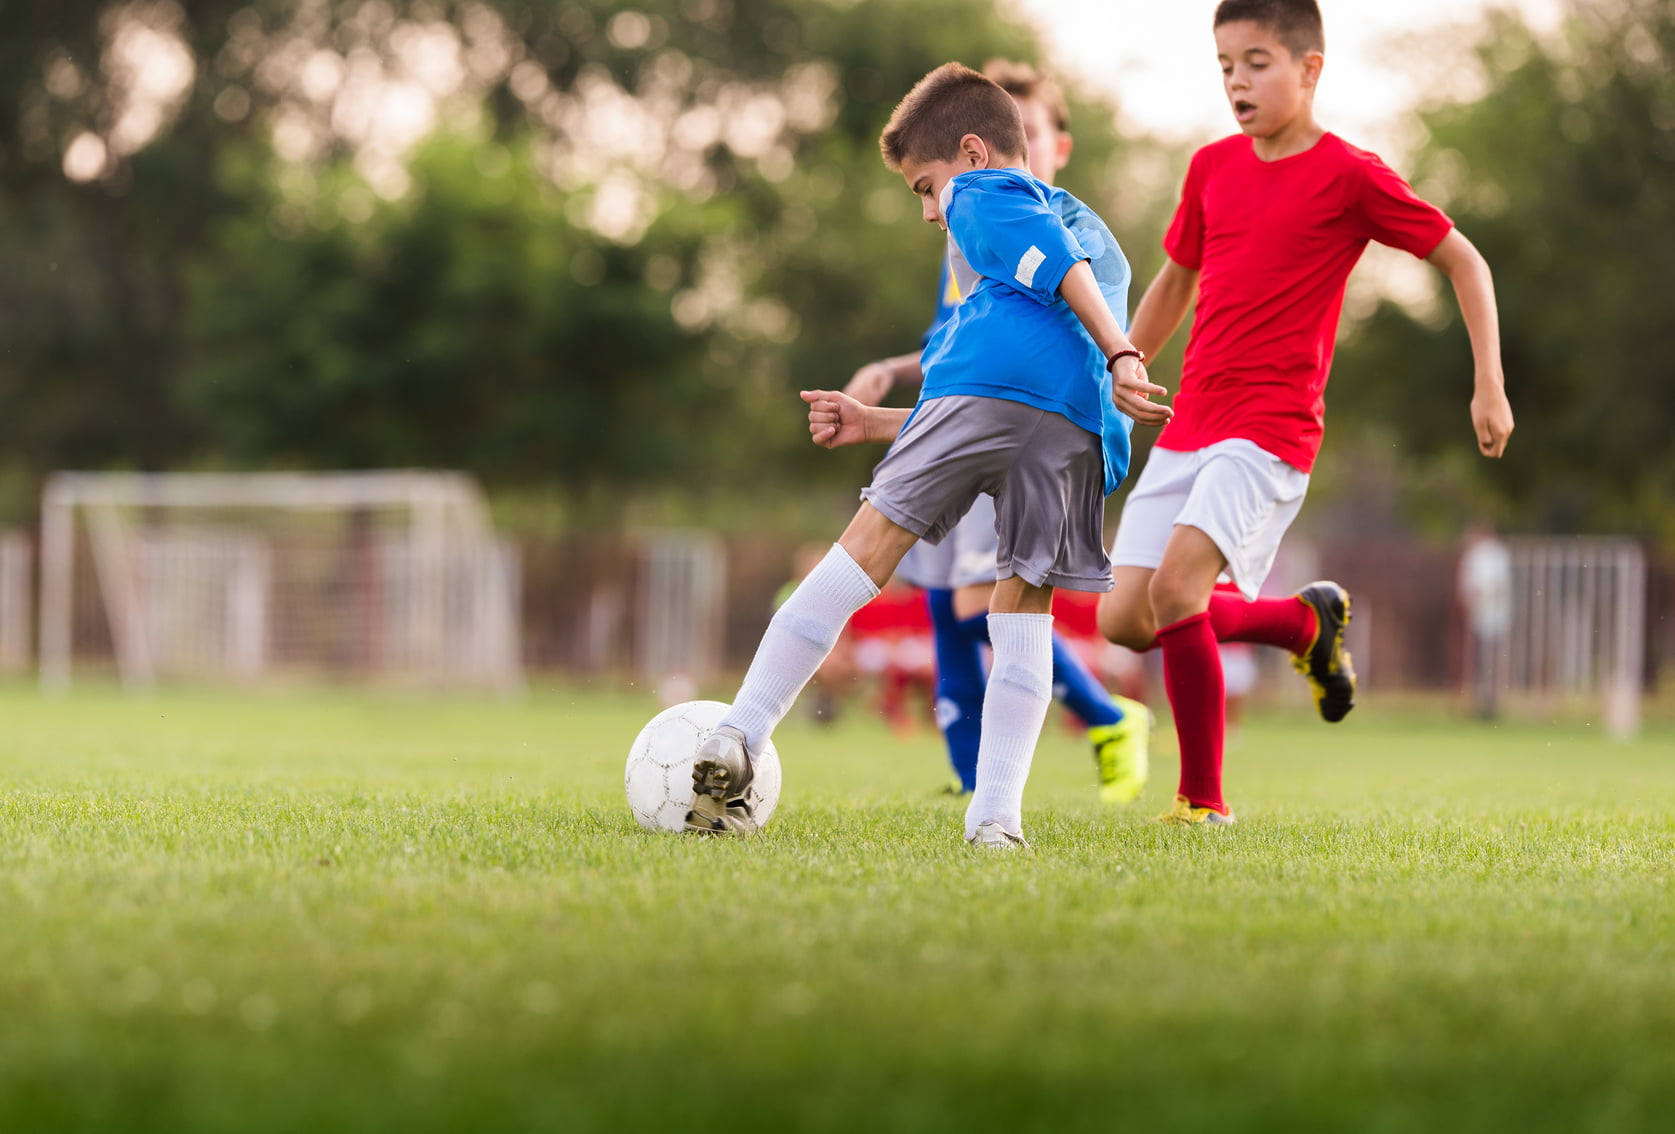 How to Avoid an ACL Injury In Soccer